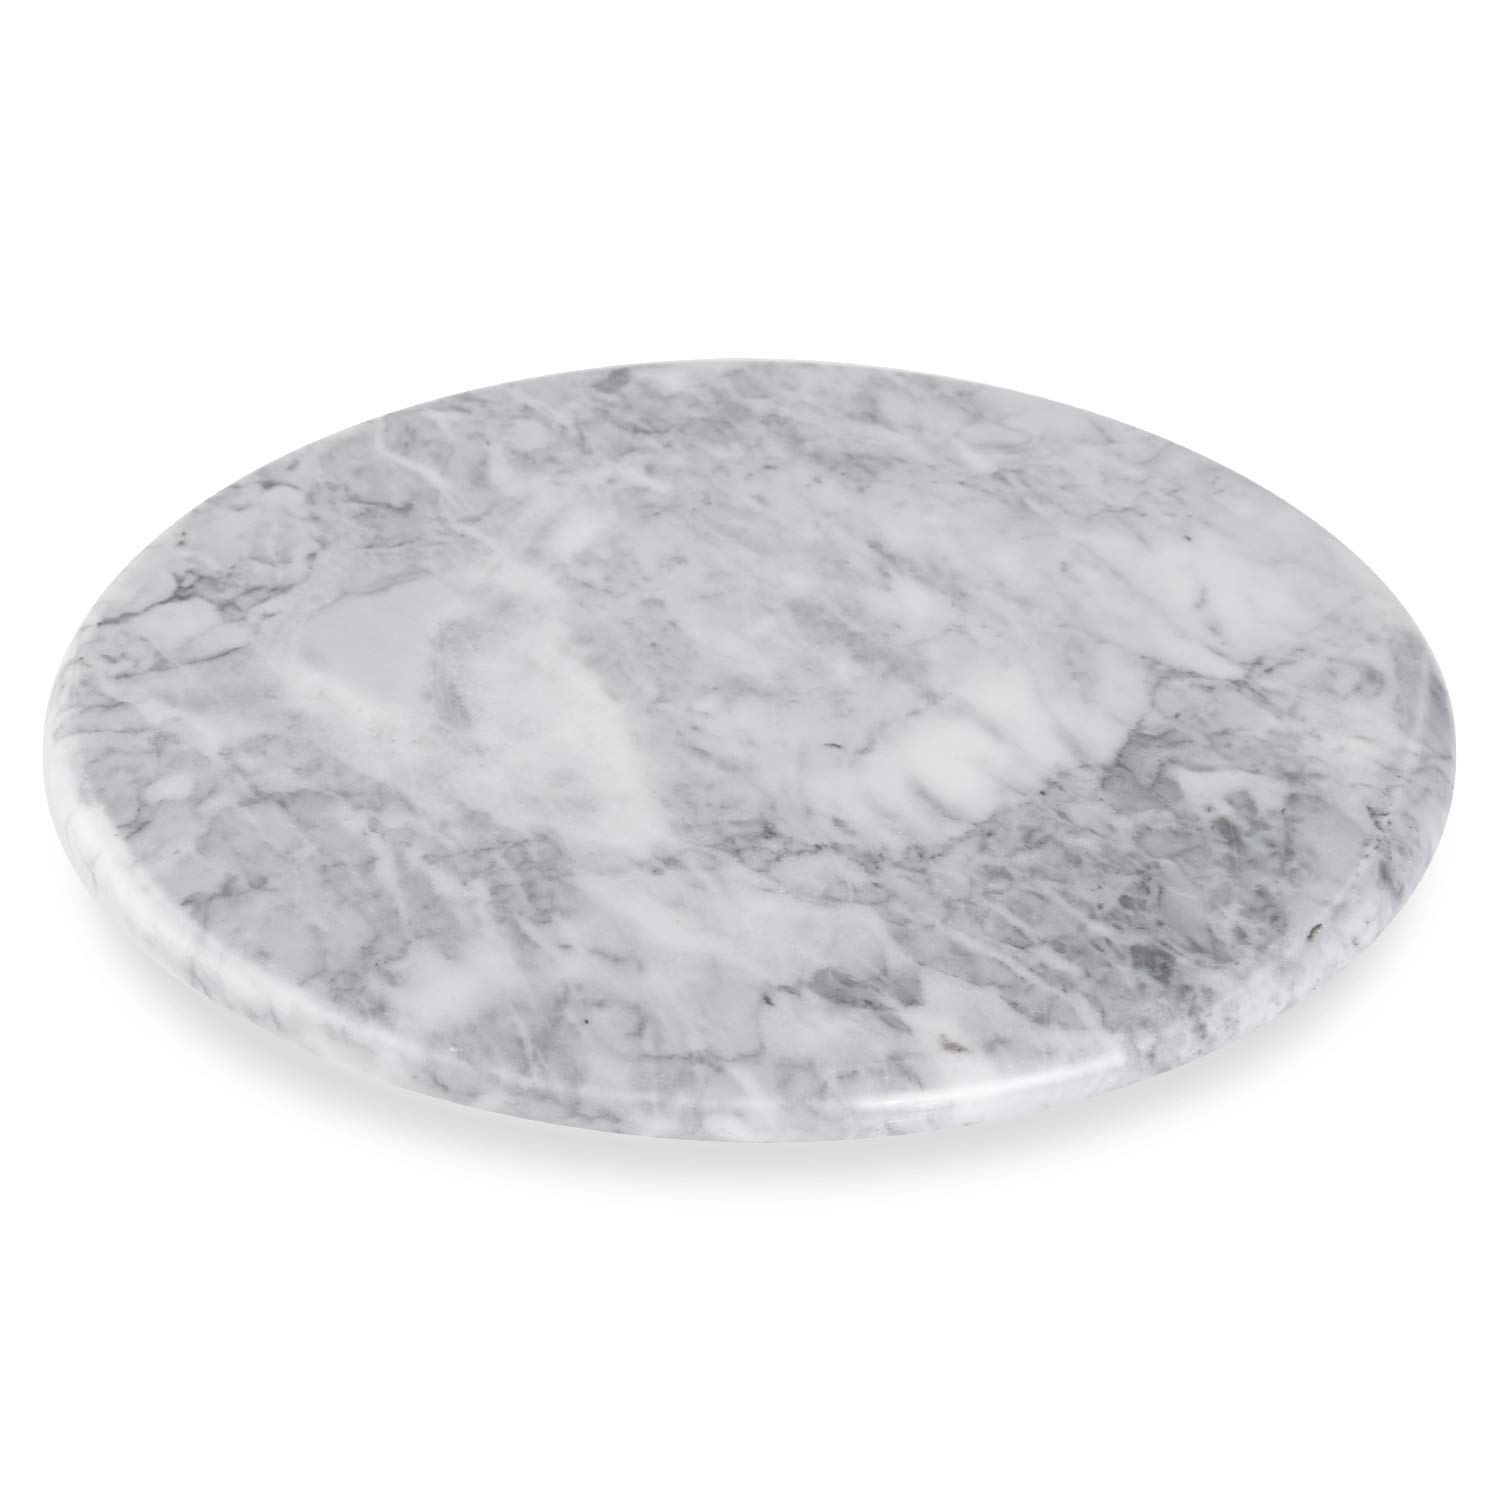 "AntTech Premium Marble Lazy Susan White Kitchen Turntable -9.8"" Diameter"